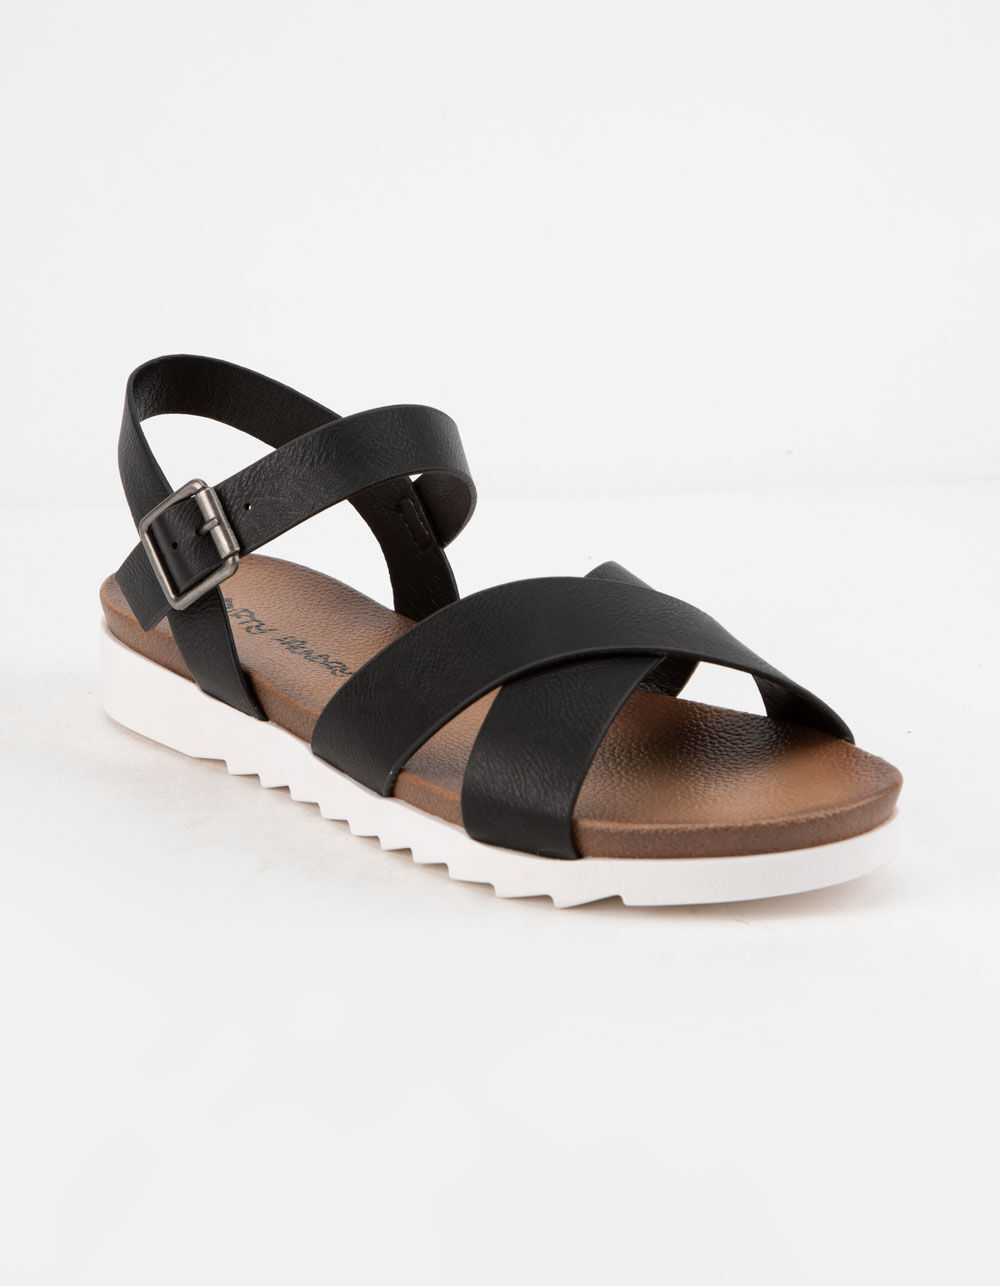 Image of DIRTY LAUNDRY CHARLEY CHICAGO BLACK ANKLE SANDALS